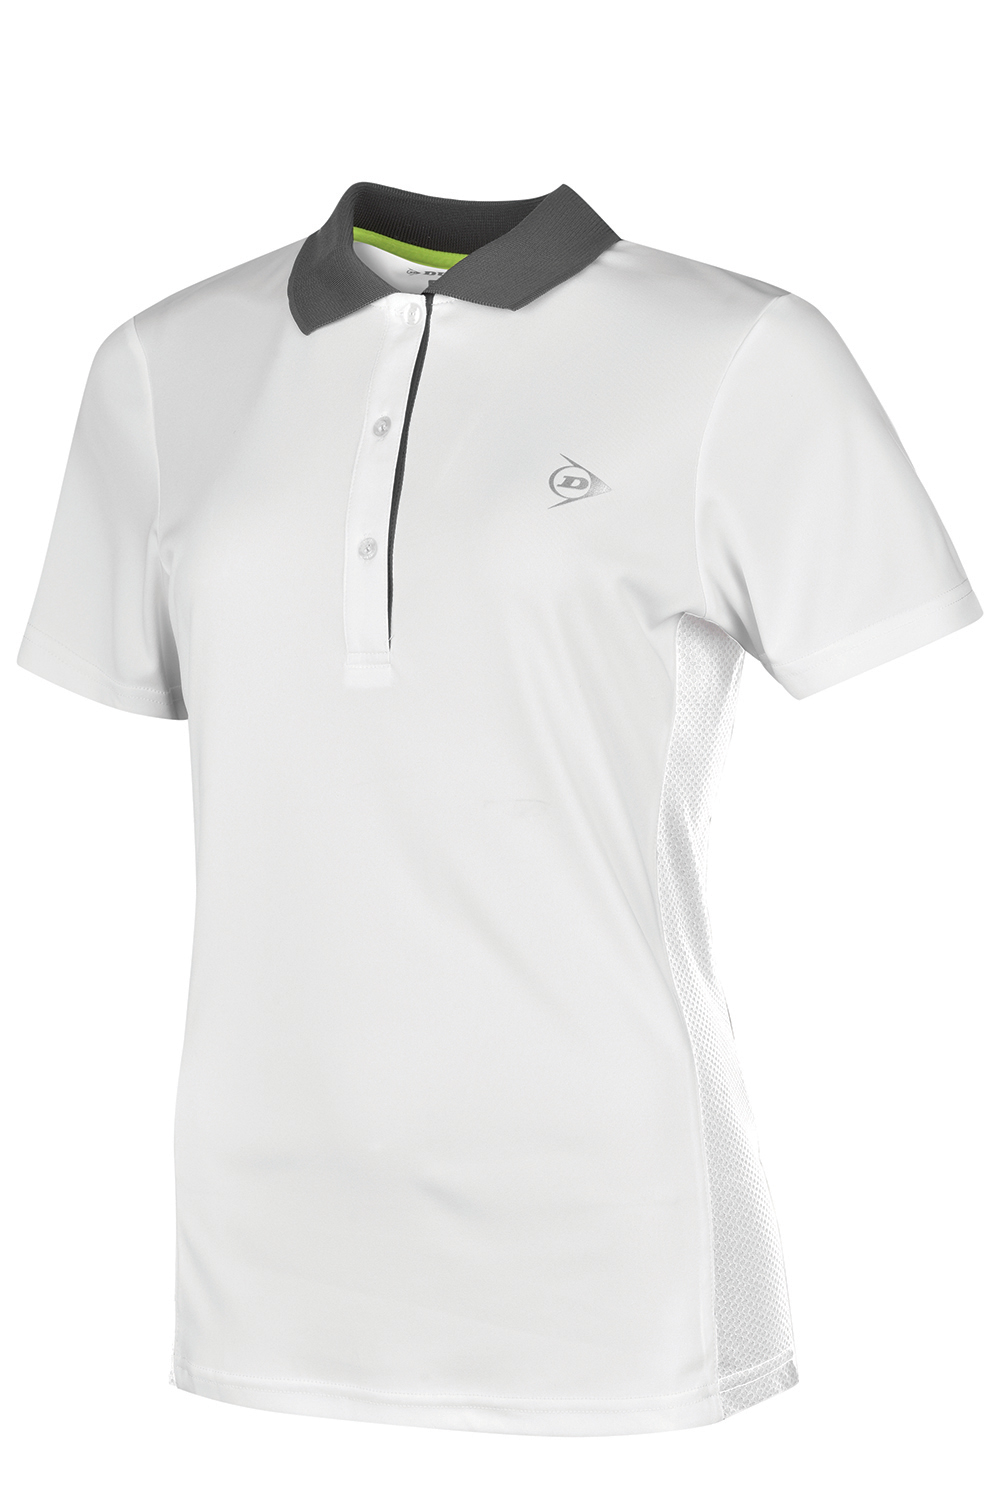 Image of   Dunlop AC Club Polo Dames - Wit / antraciet - L